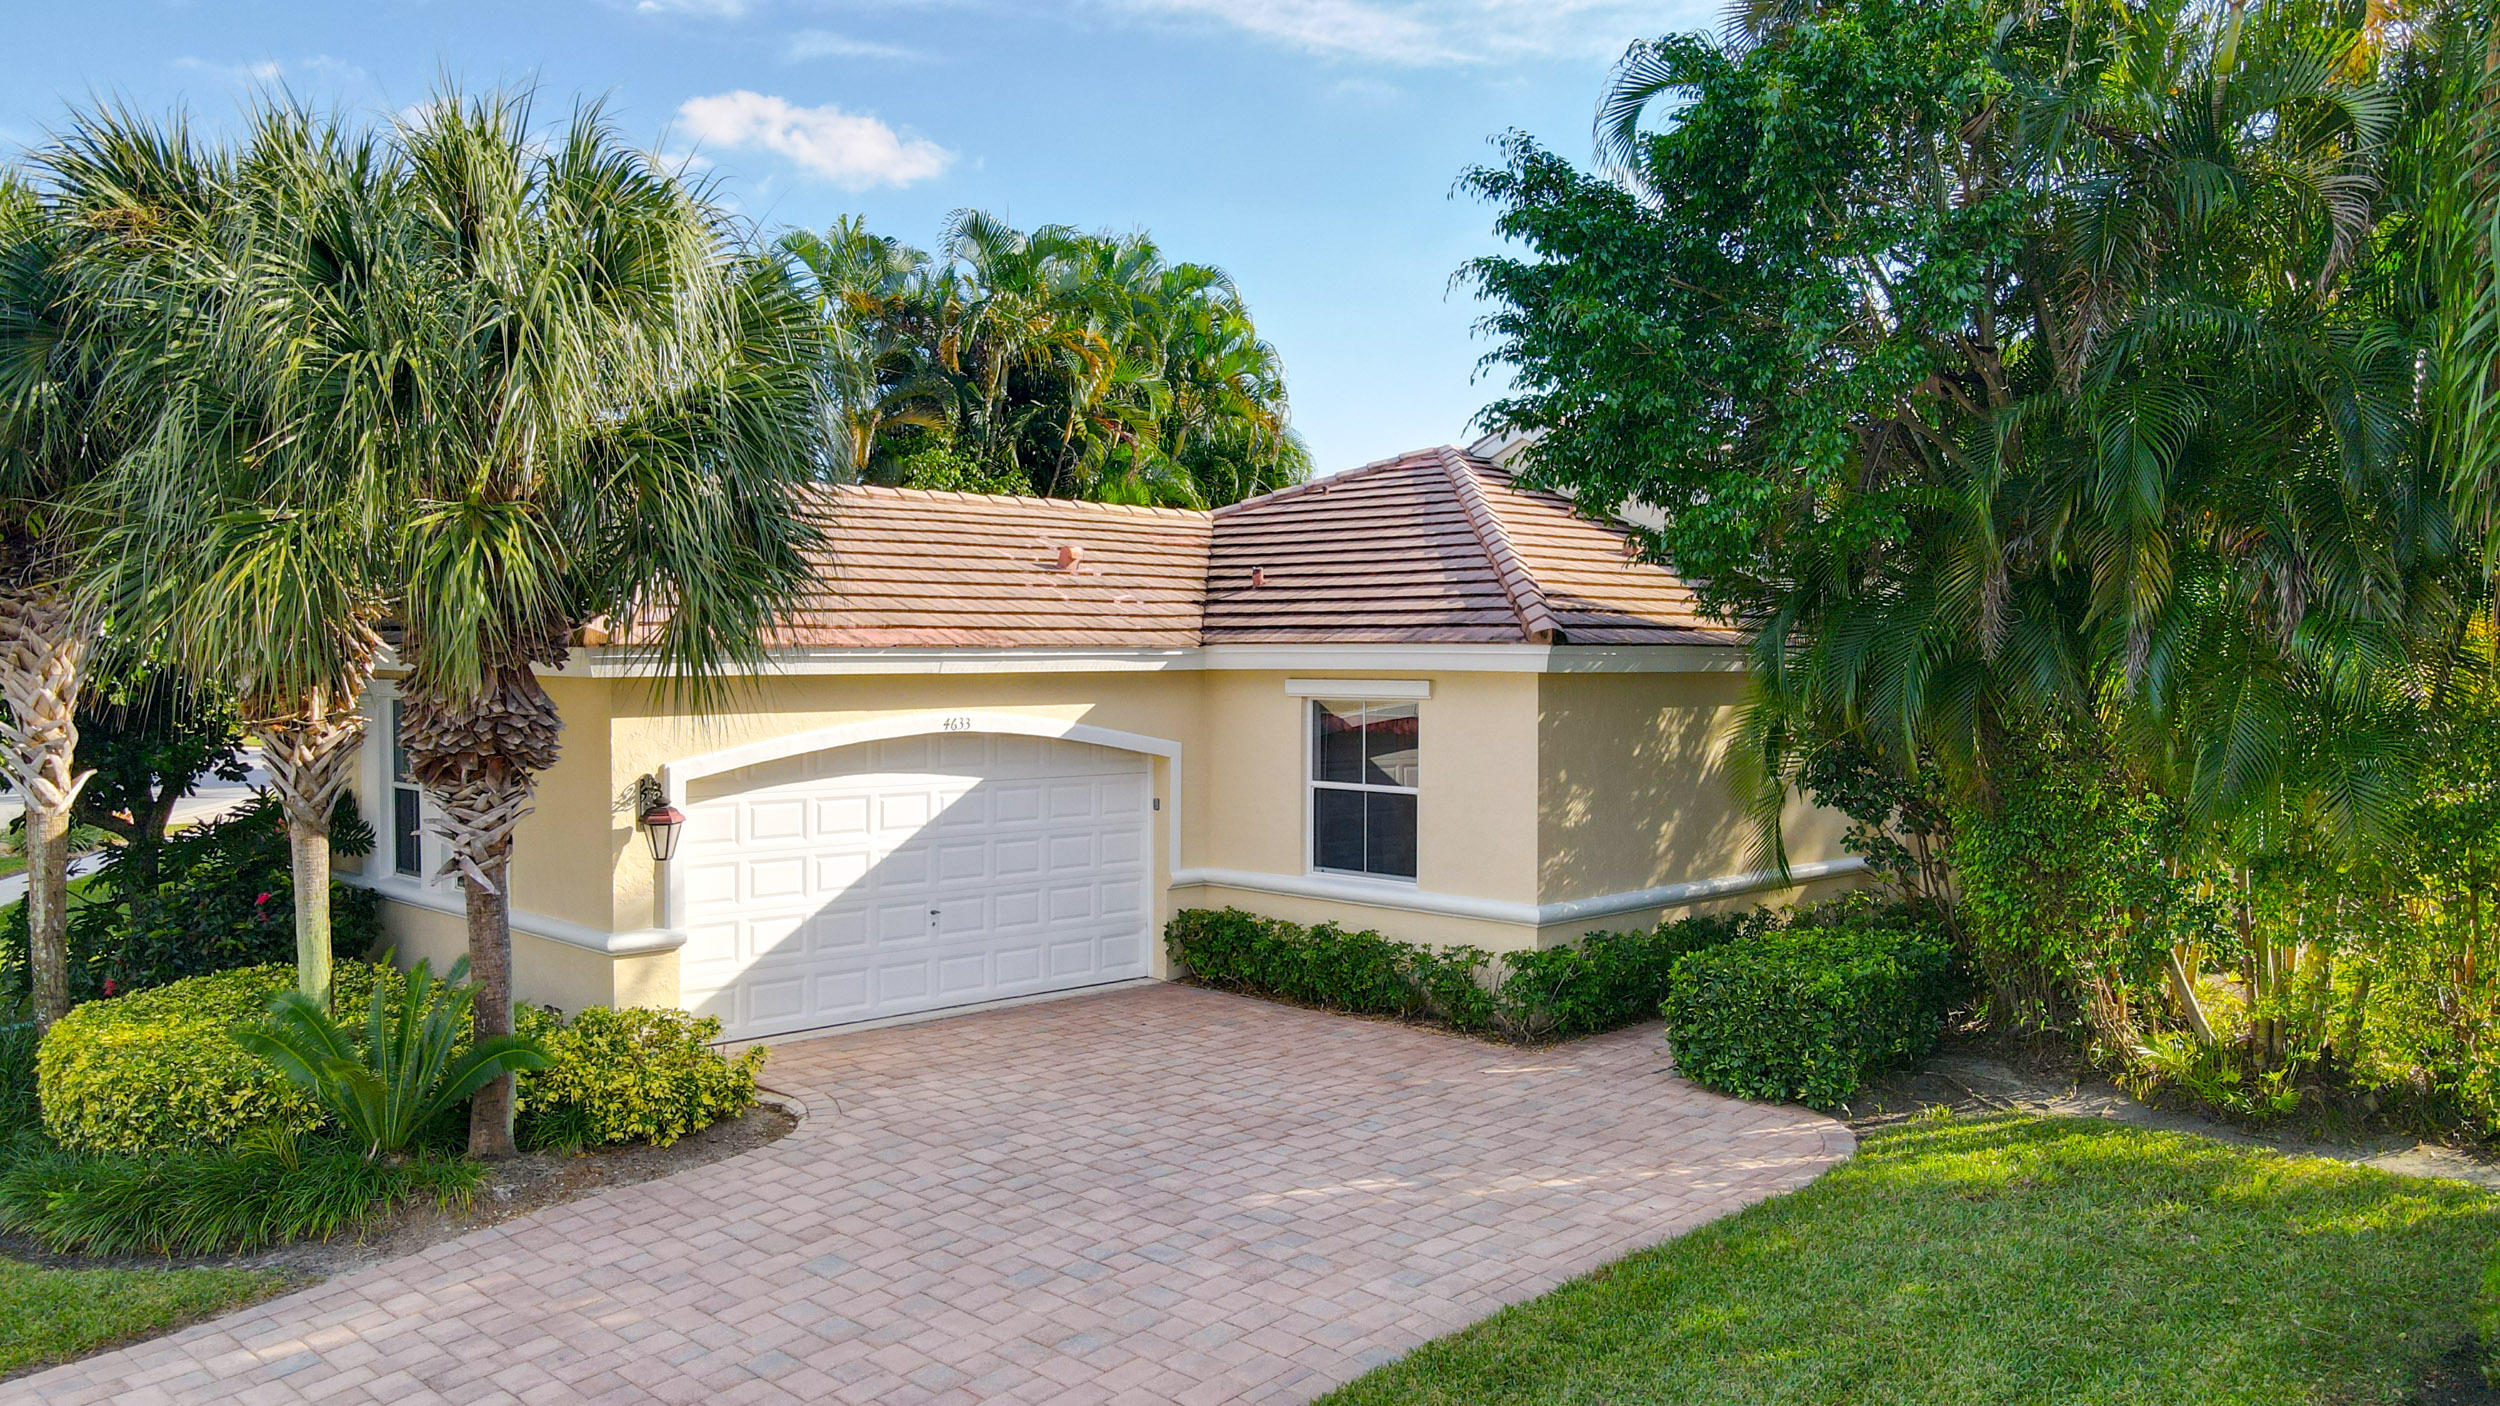 Home for sale in Wycliffe - Huntington Lake Worth Florida